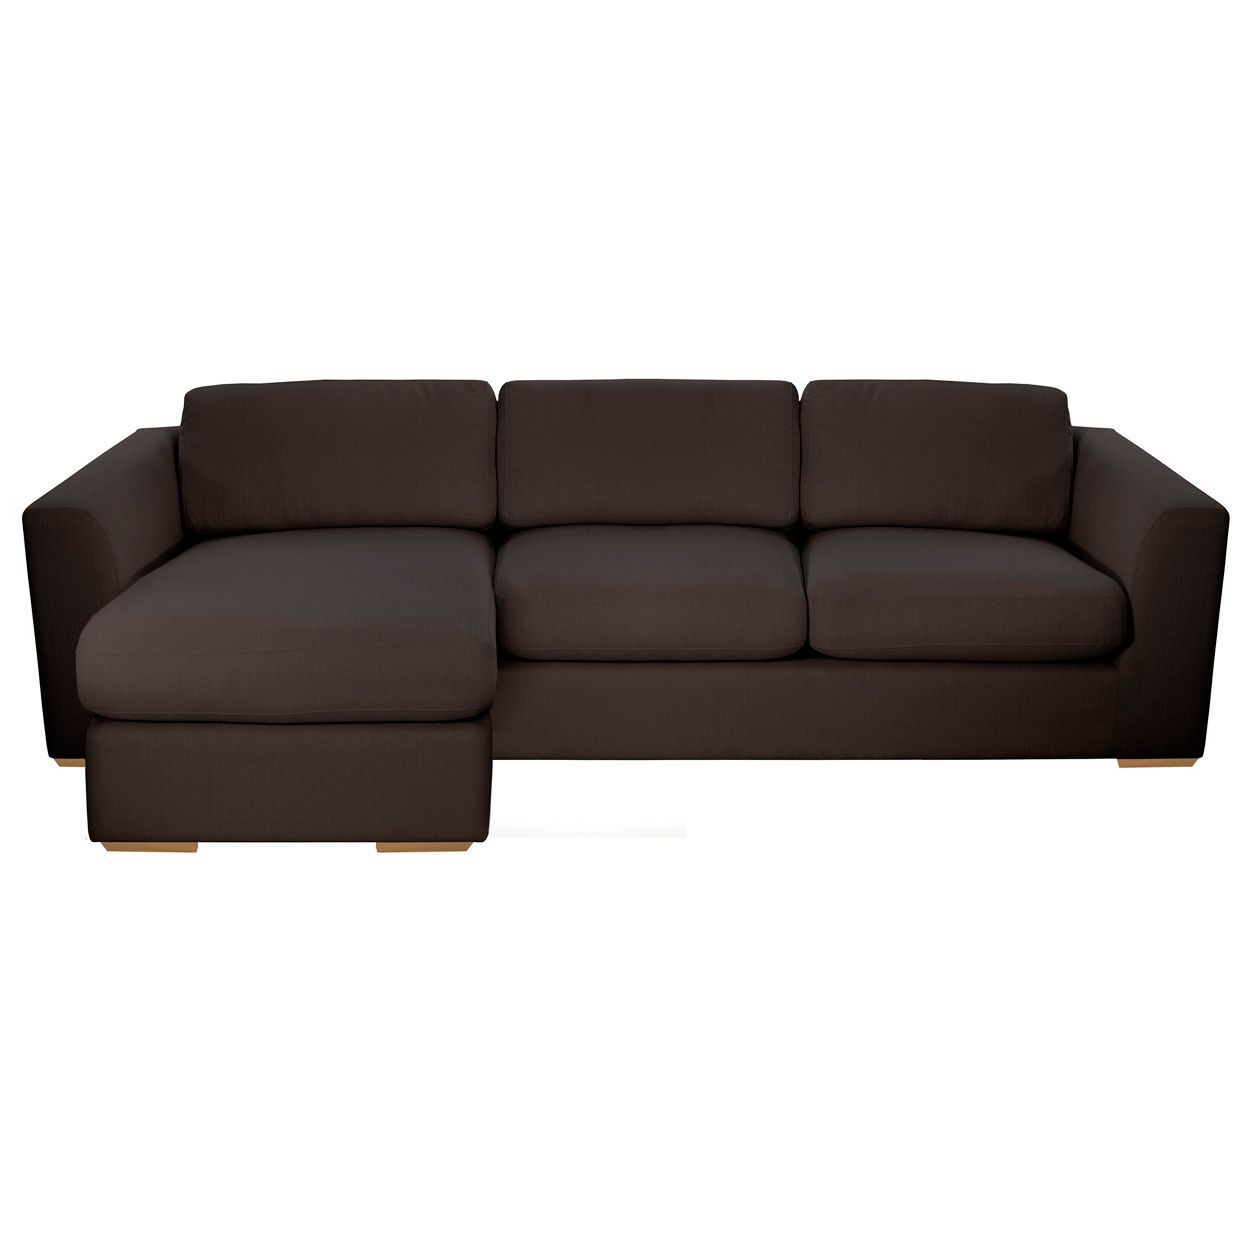 Our premium 'Paris' range seamlessly blends comfort and style. This chaise corner sofa features a contemporary design with generous proportions and soft cushioning. The fine-textured fabric has a subtly lustrous finish, yet maintains a smooth and inviting feel that's equally suited to formal or relaxed settings.